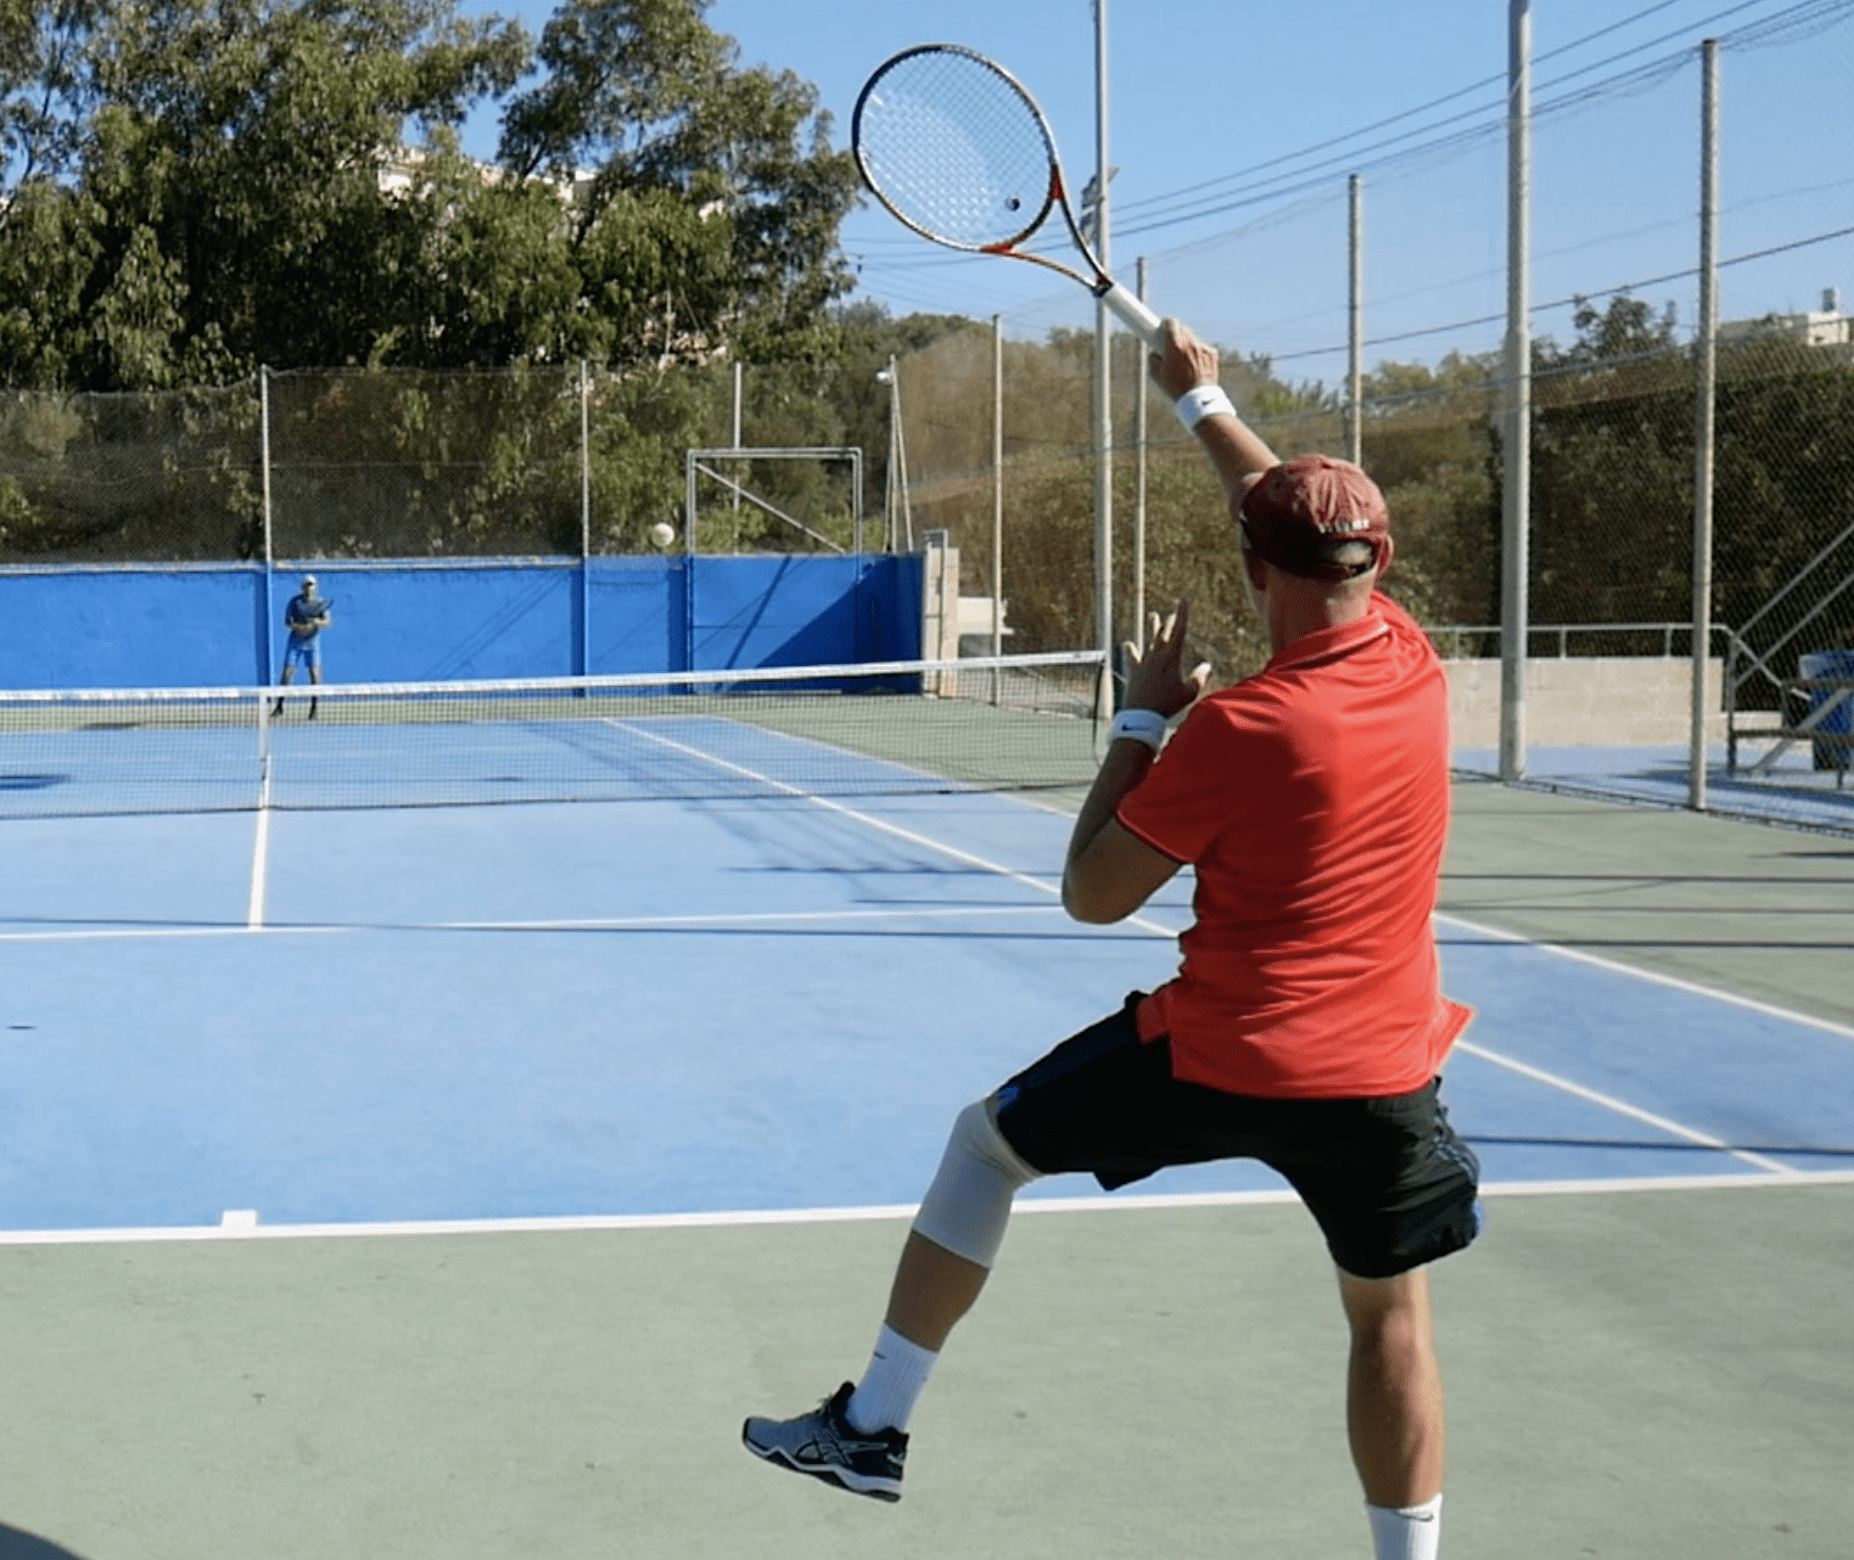 Buying a tennis racquet: Power vs Comfort